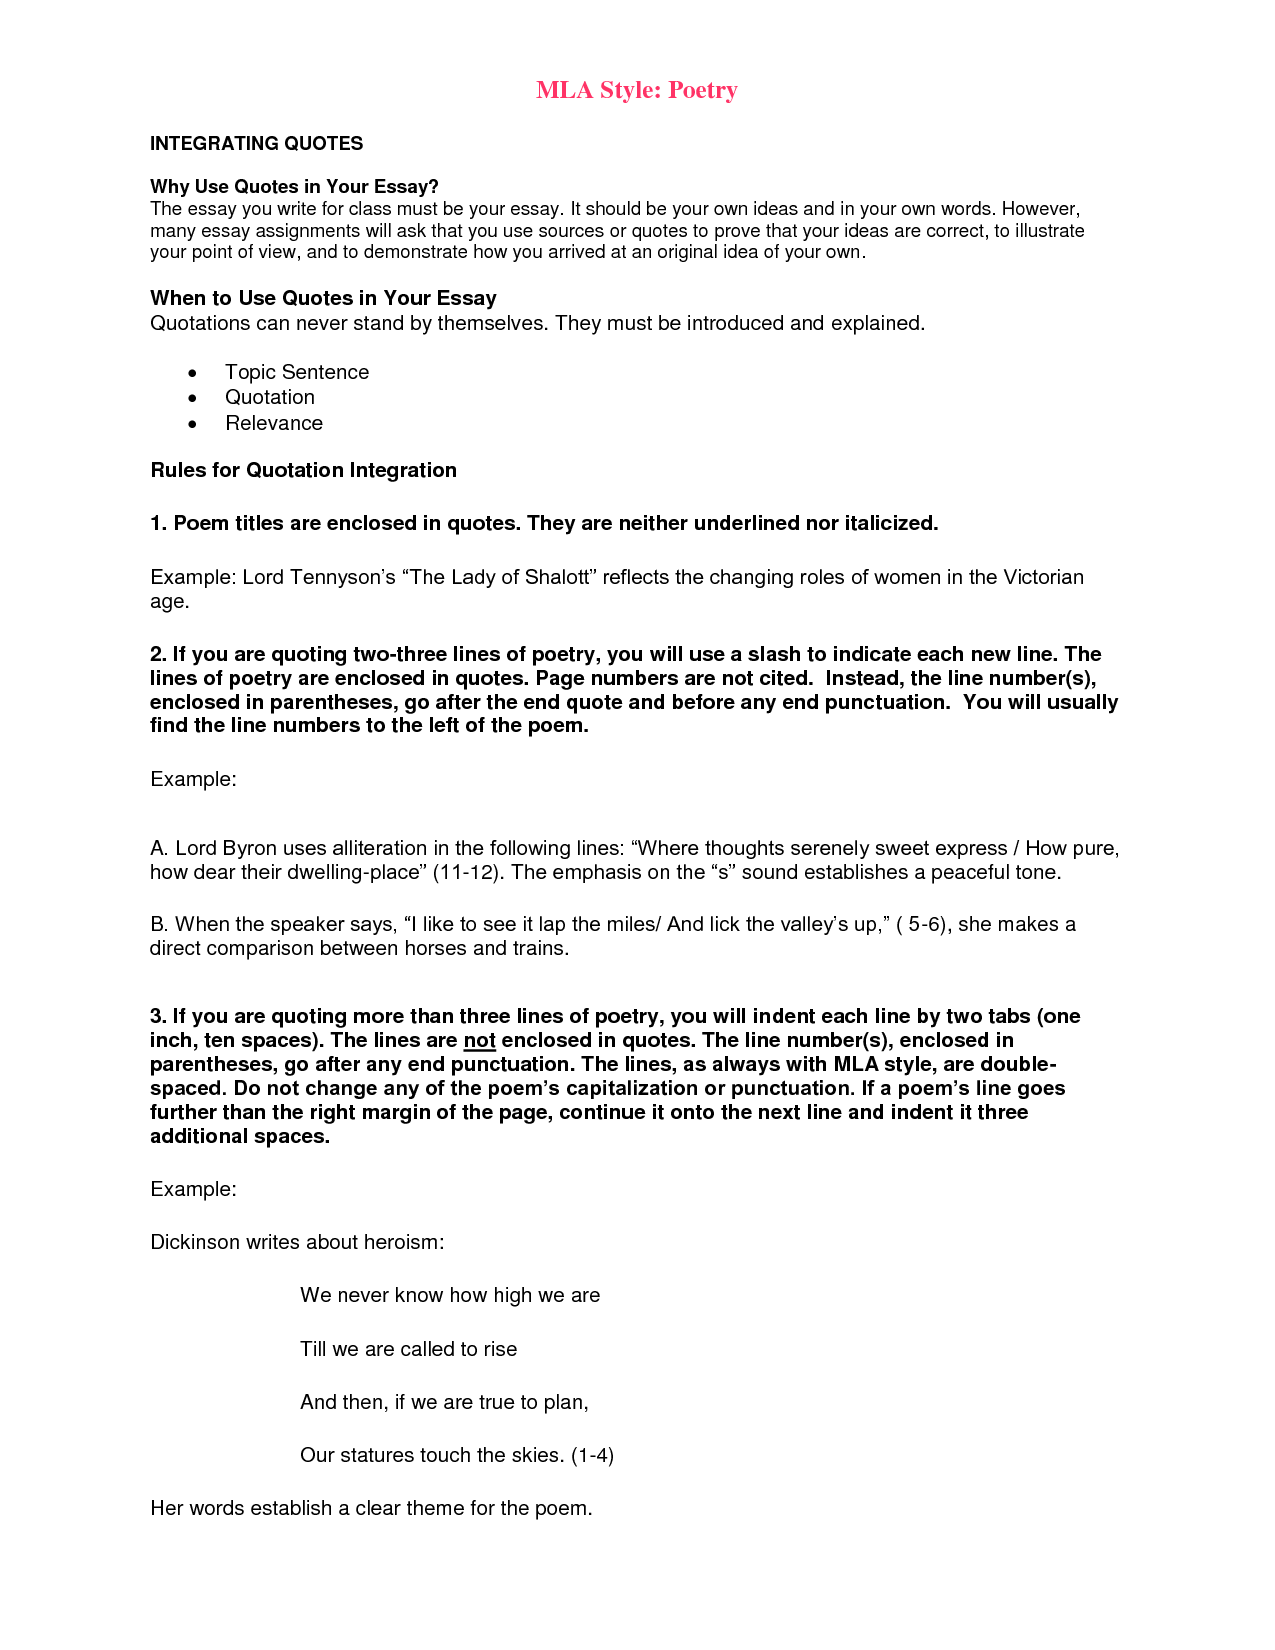 Essay On English Language Mla Citation For Poems  Argumentative Essay Thesis Examples also Professional Custom Writing Service Mla Format Poems  Omfarmcpgroupco Business Plan Writers In Oklahoma